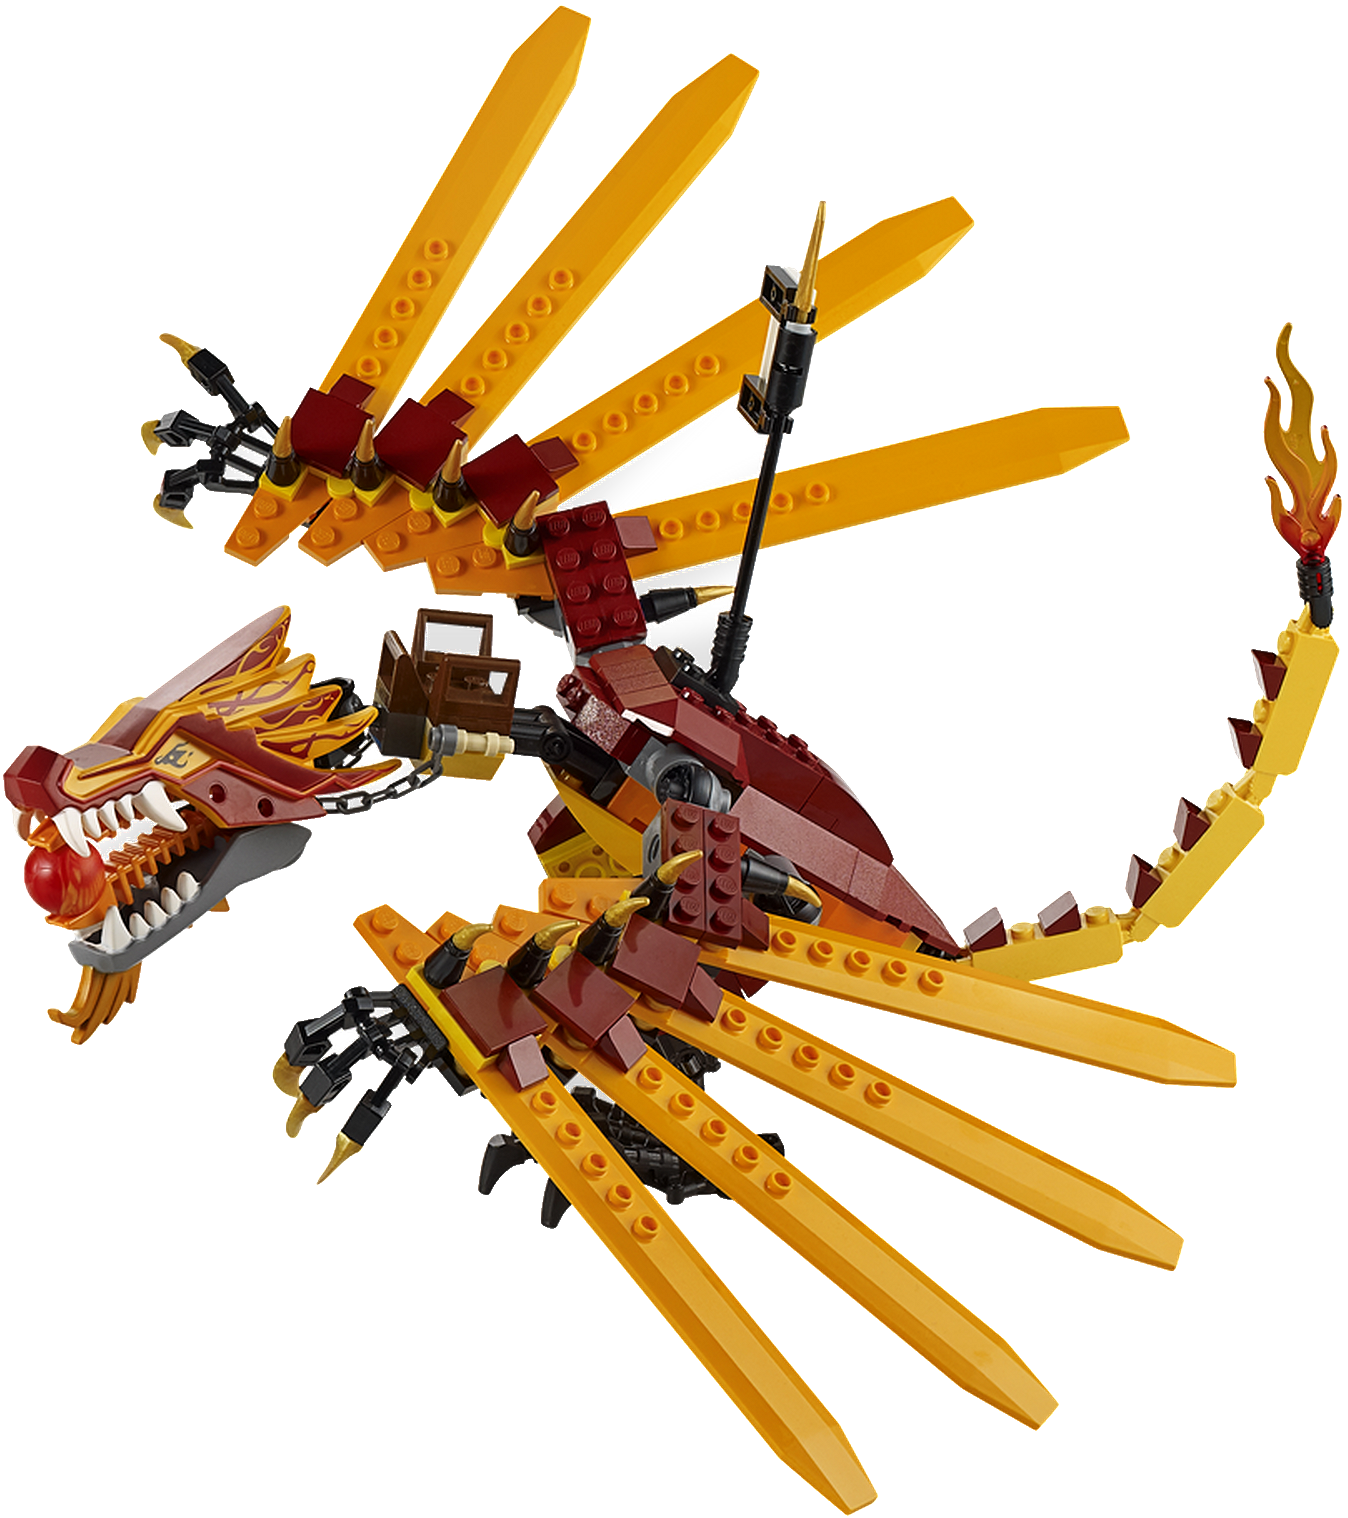 Weapon clip dragon. Free pictures of fire